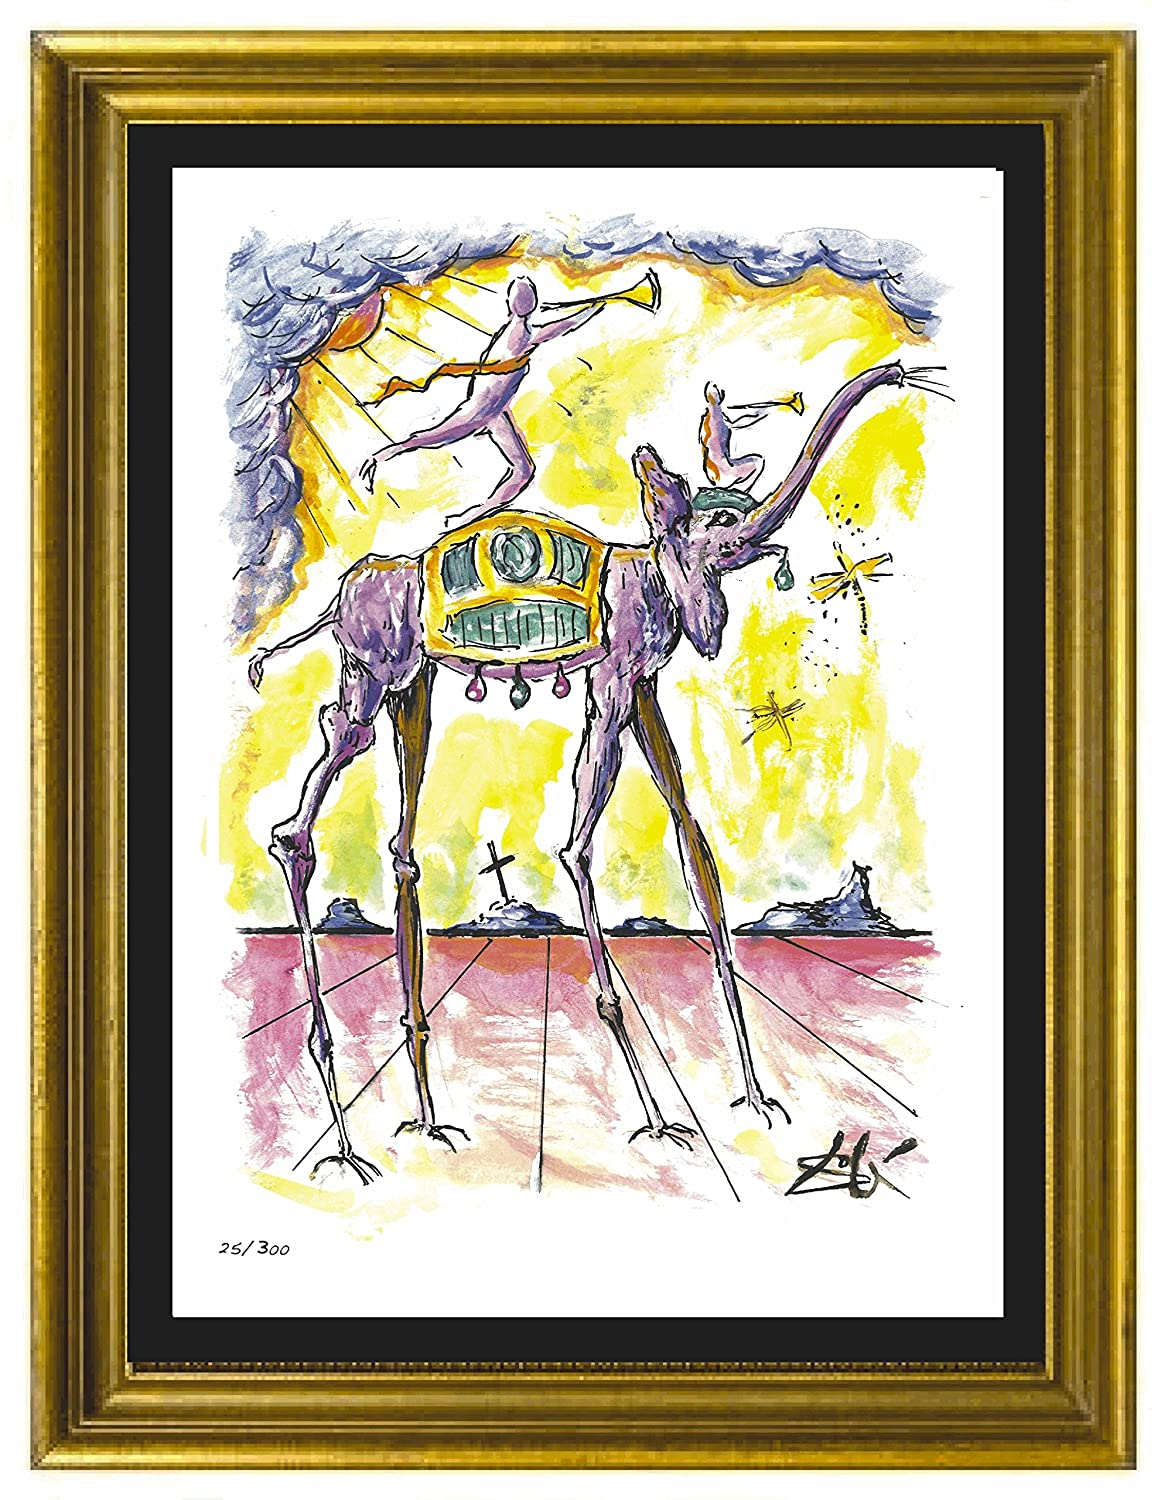 Amazon.com: Salvador Dali Signed & Hand-Numbered Limited Edition ...